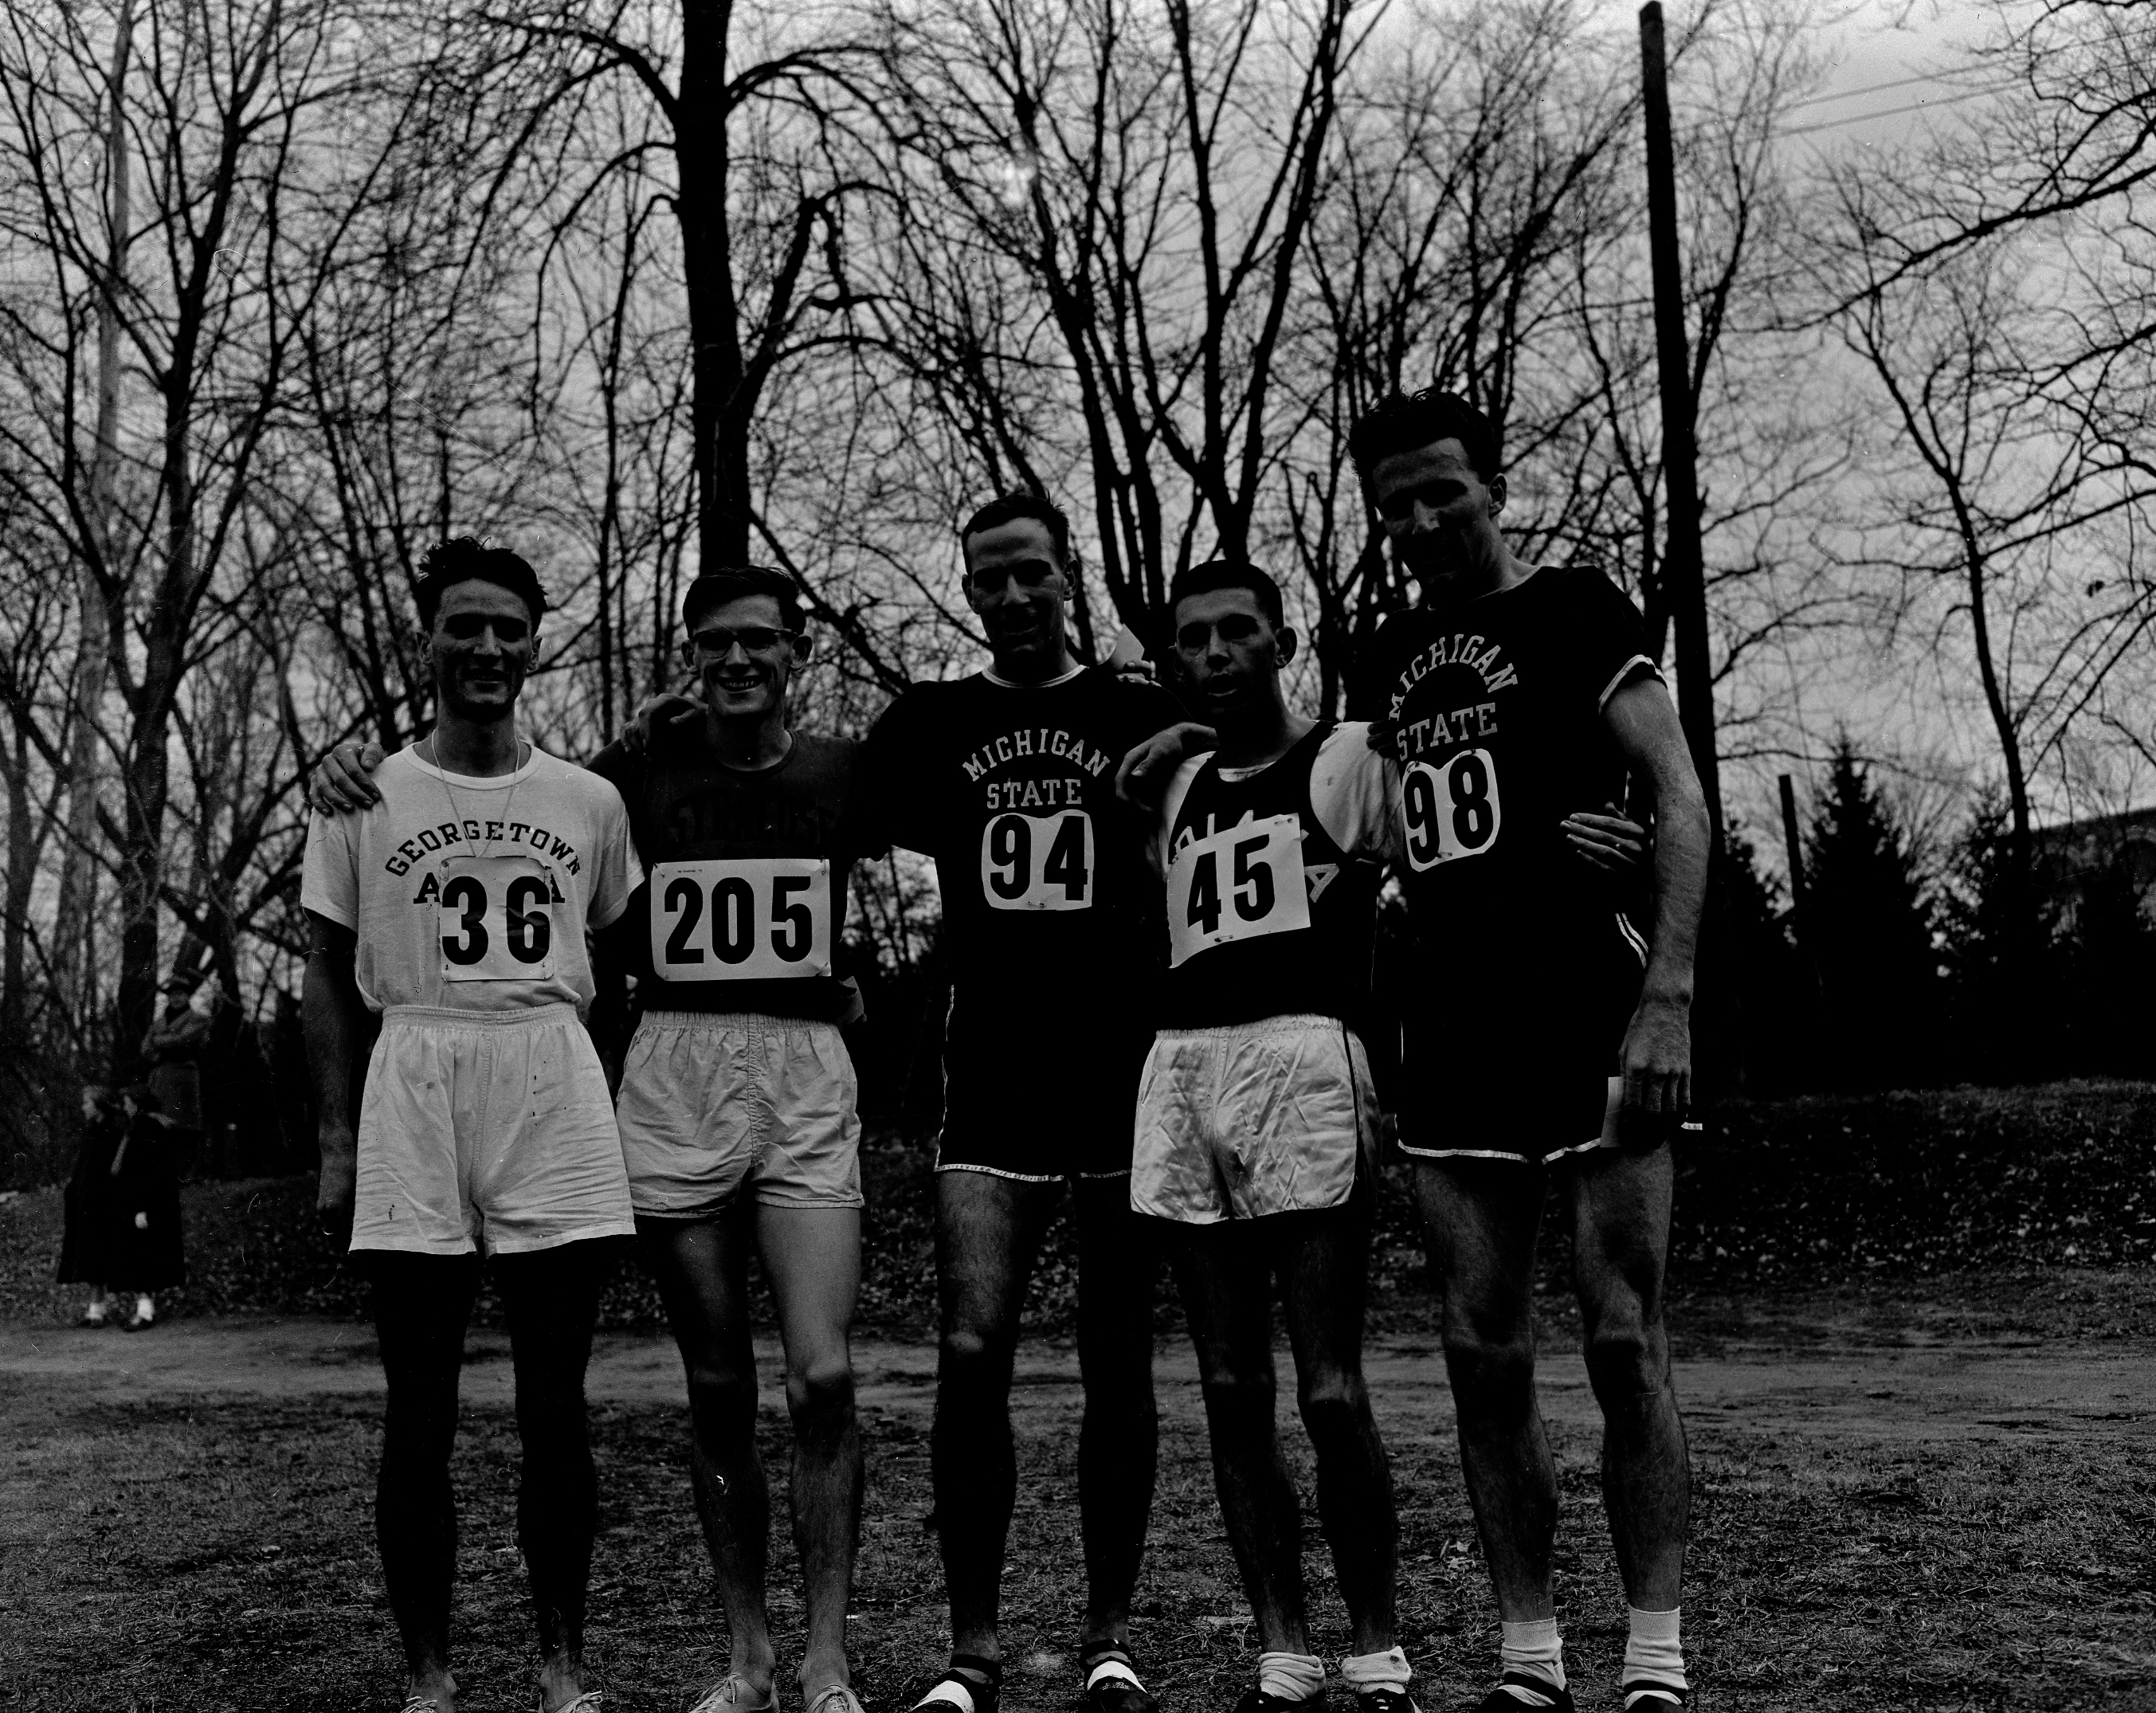 Five runner at the Cross Country NCAA Championship, 1952